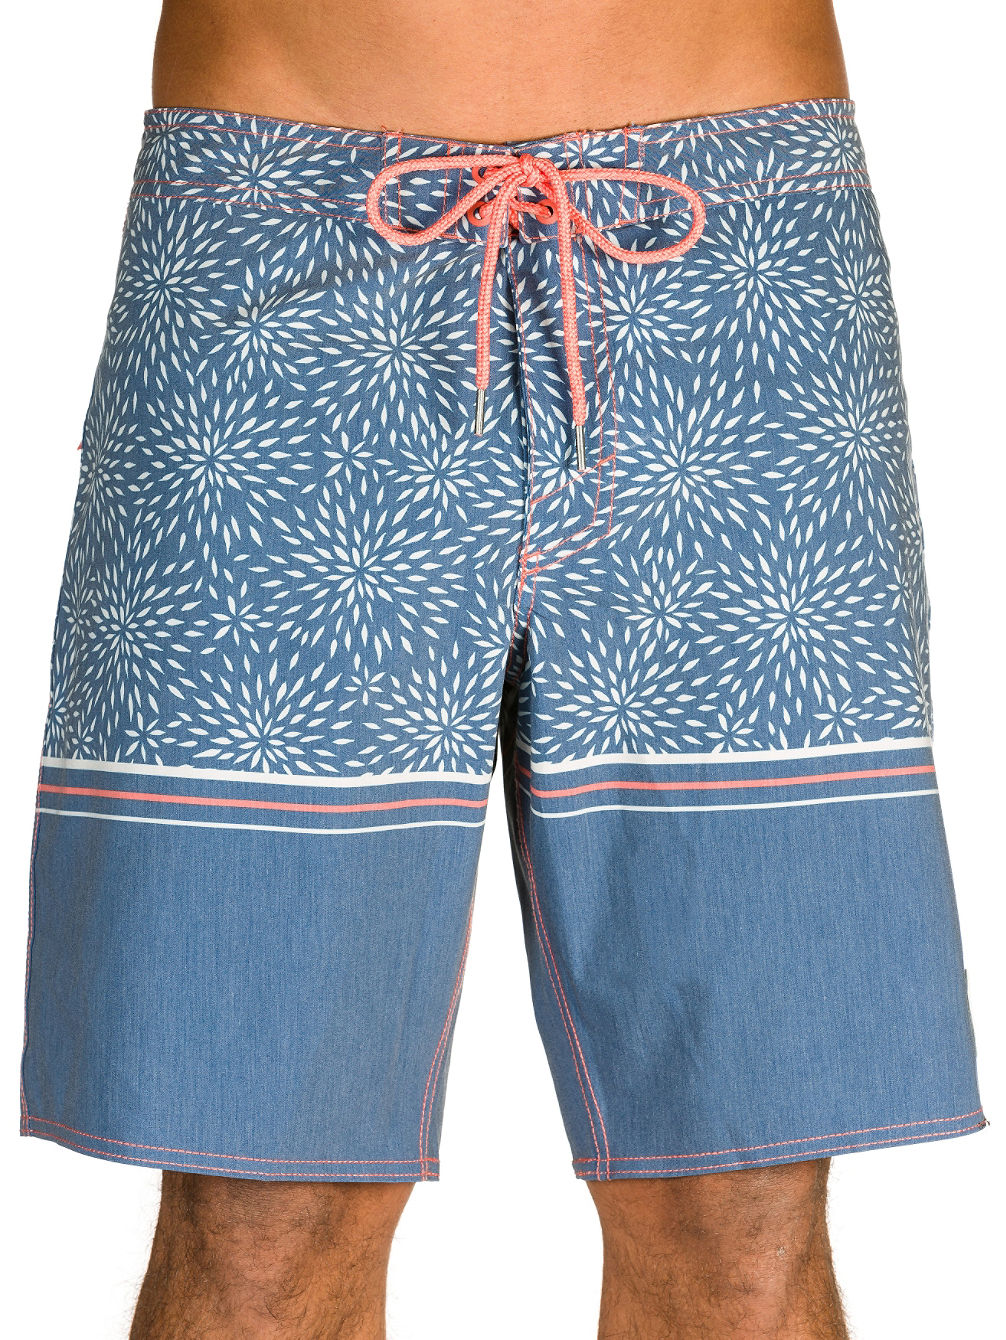 For The Ocean Boardshorts